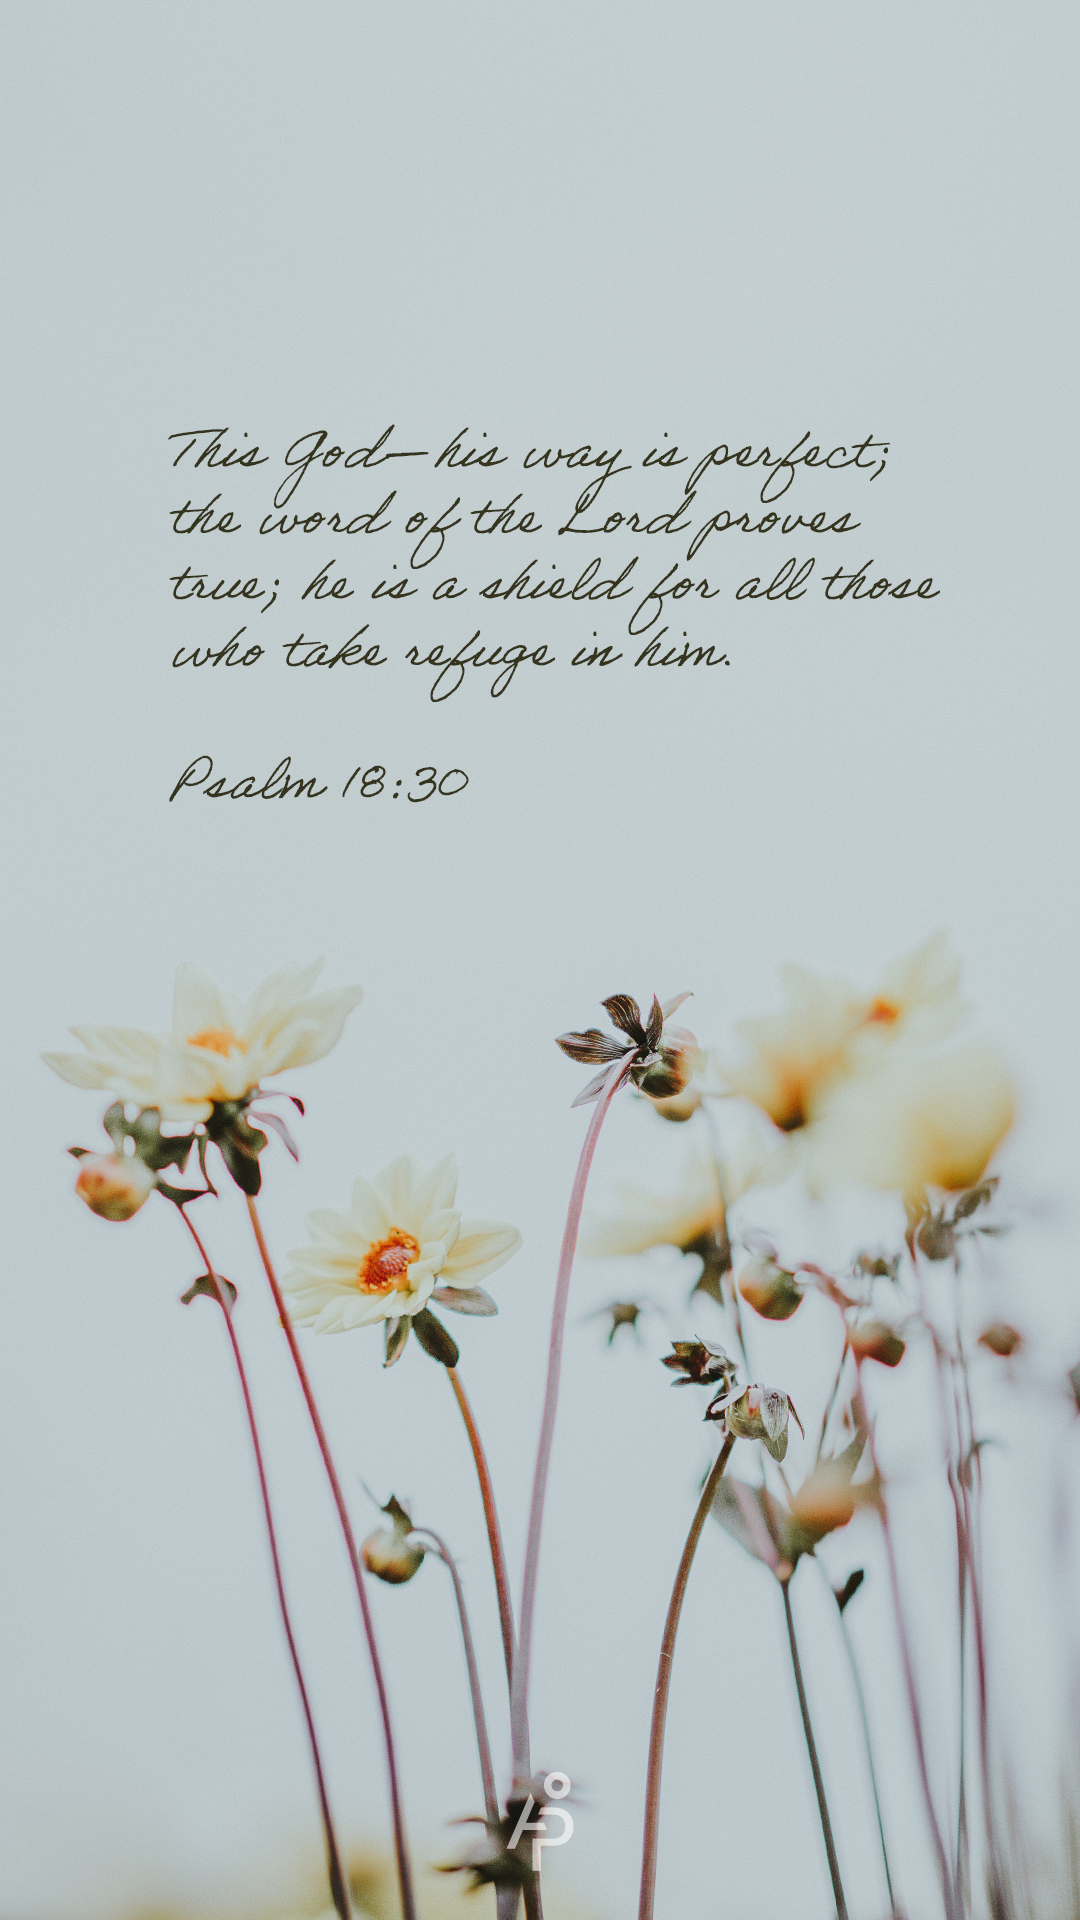 Free Bible Verse Phone Wallpapers Aop Homeschooling